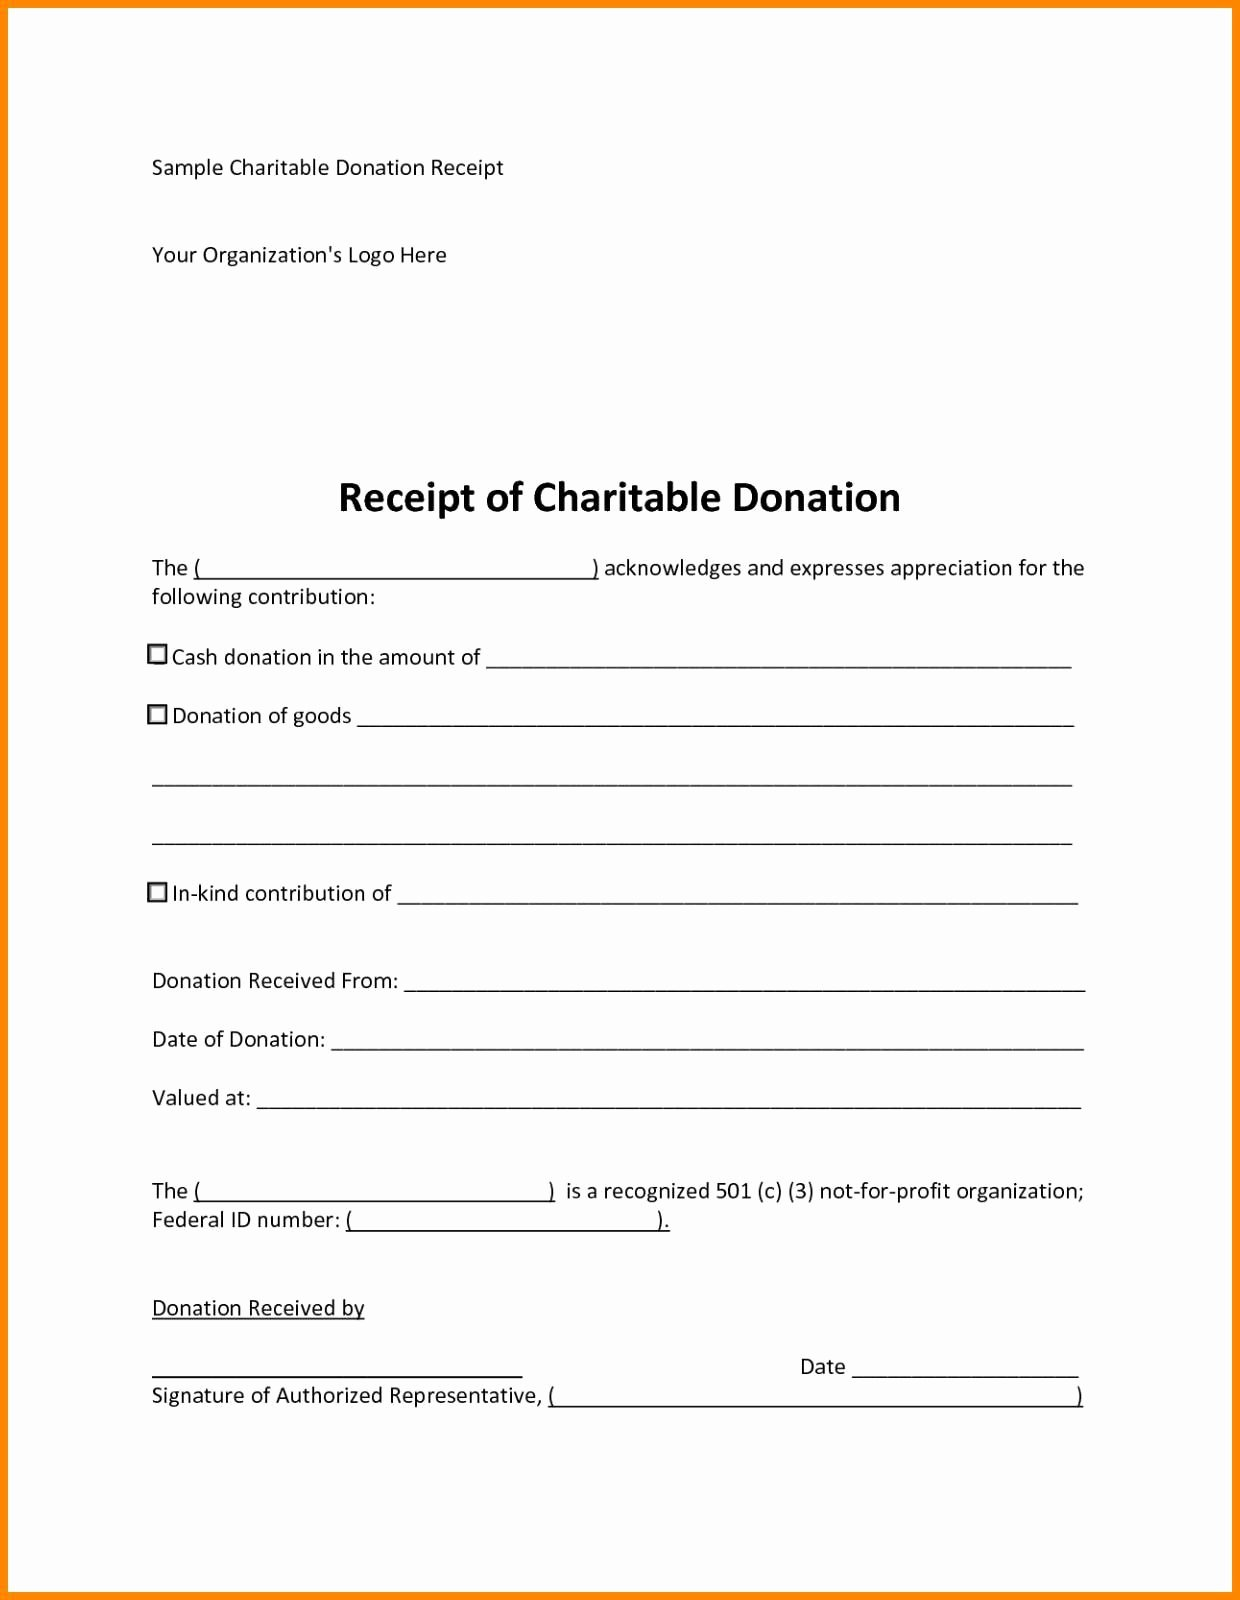 Donation Pledge form Template Luxury Charity Pledge form Template Fresh Silent Auction Basket